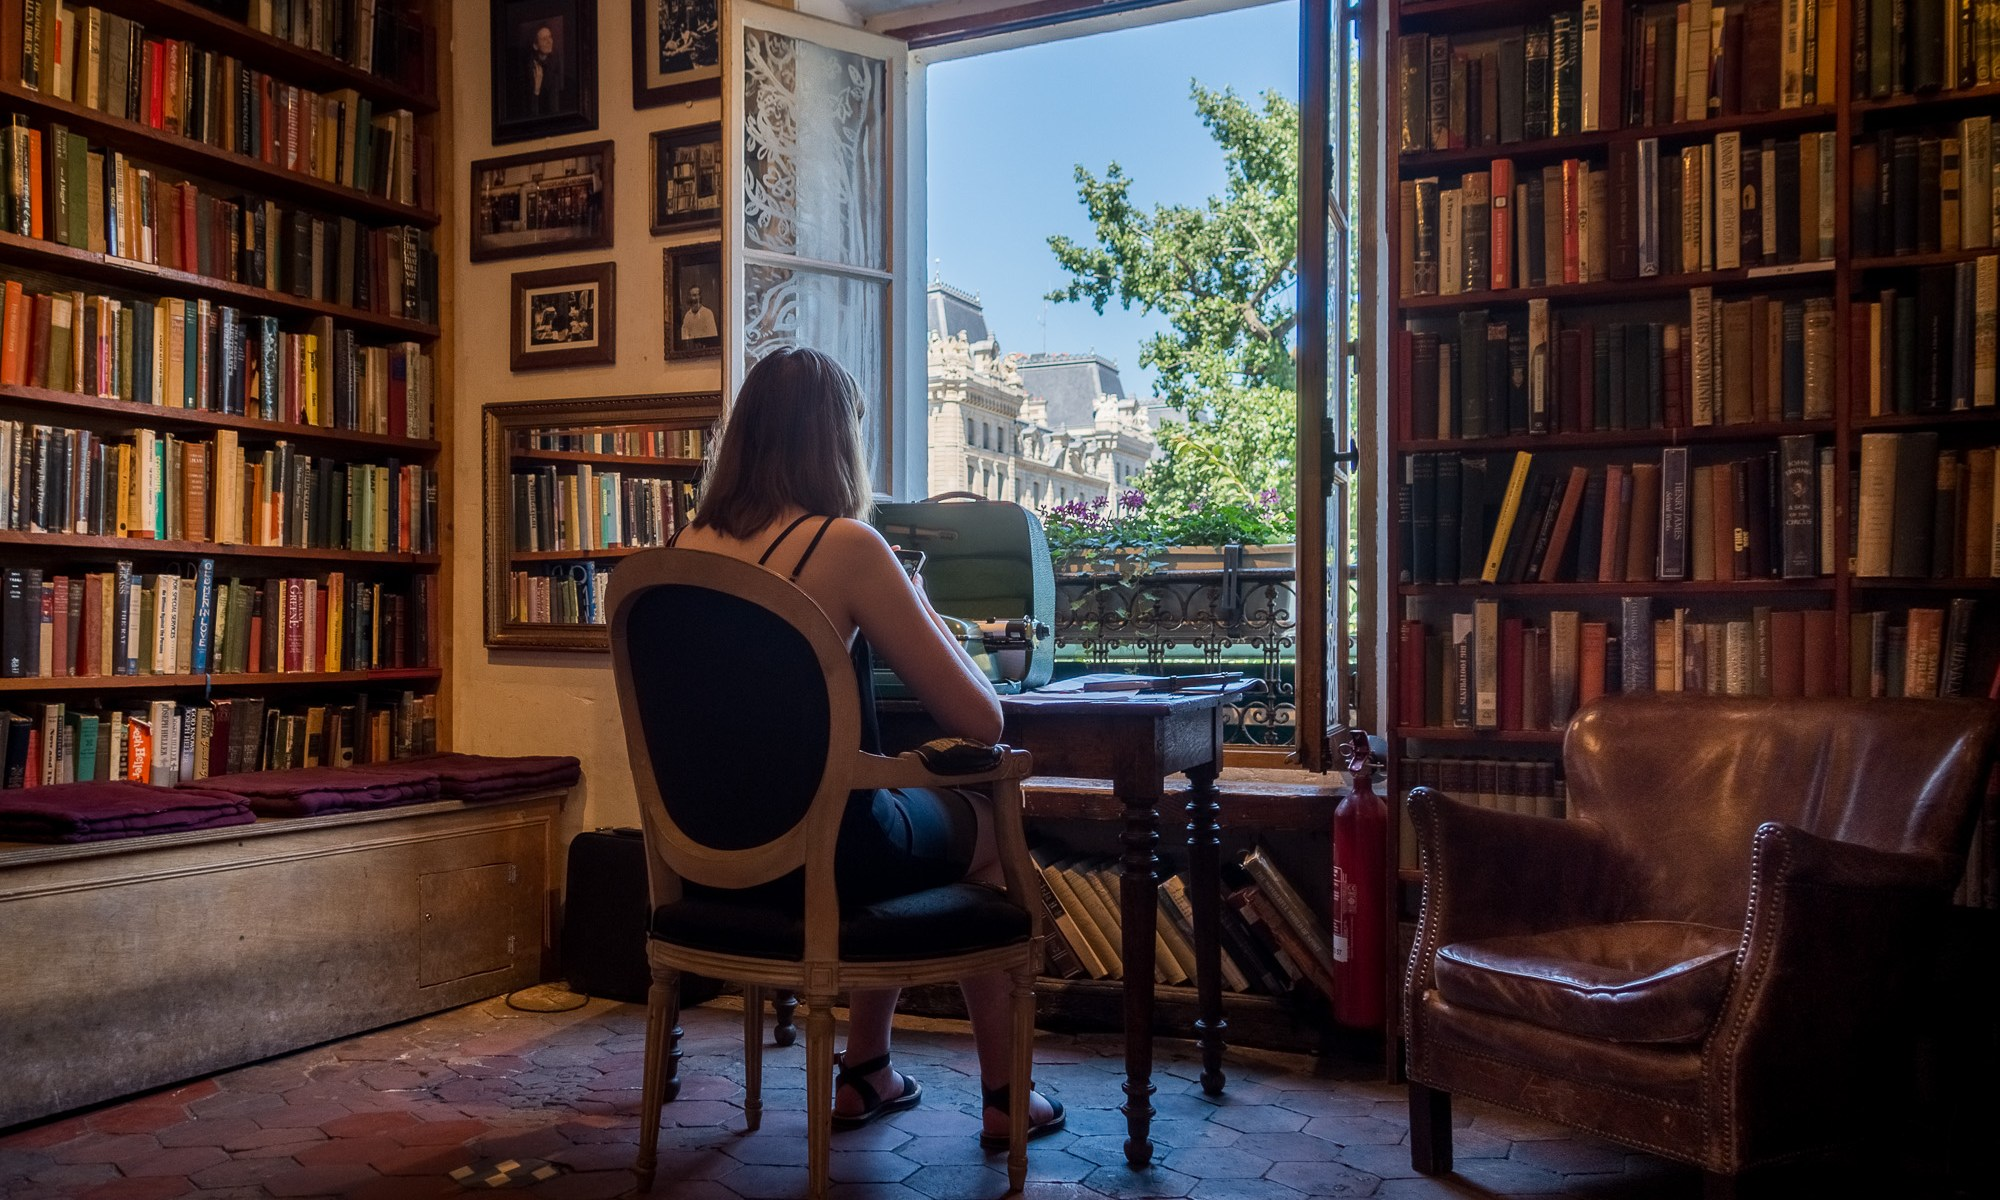 Inside Shakespeare and Company bookshop